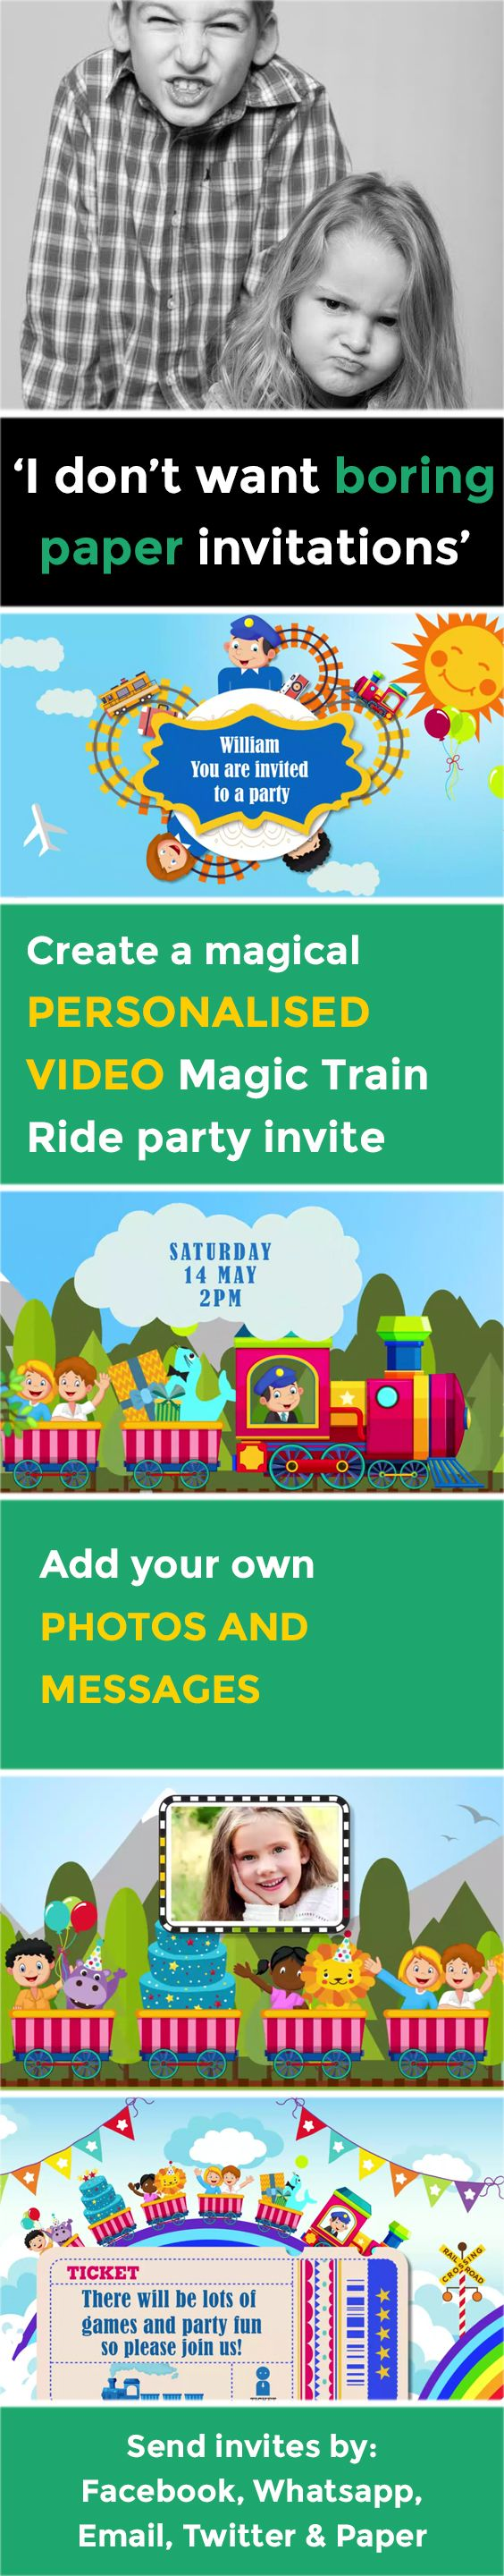 birthday party invitation templates free printable%0A Create the perfect kids video party invitation that makes organising your  party a piece of cake  Children u    s evites have never been so magical